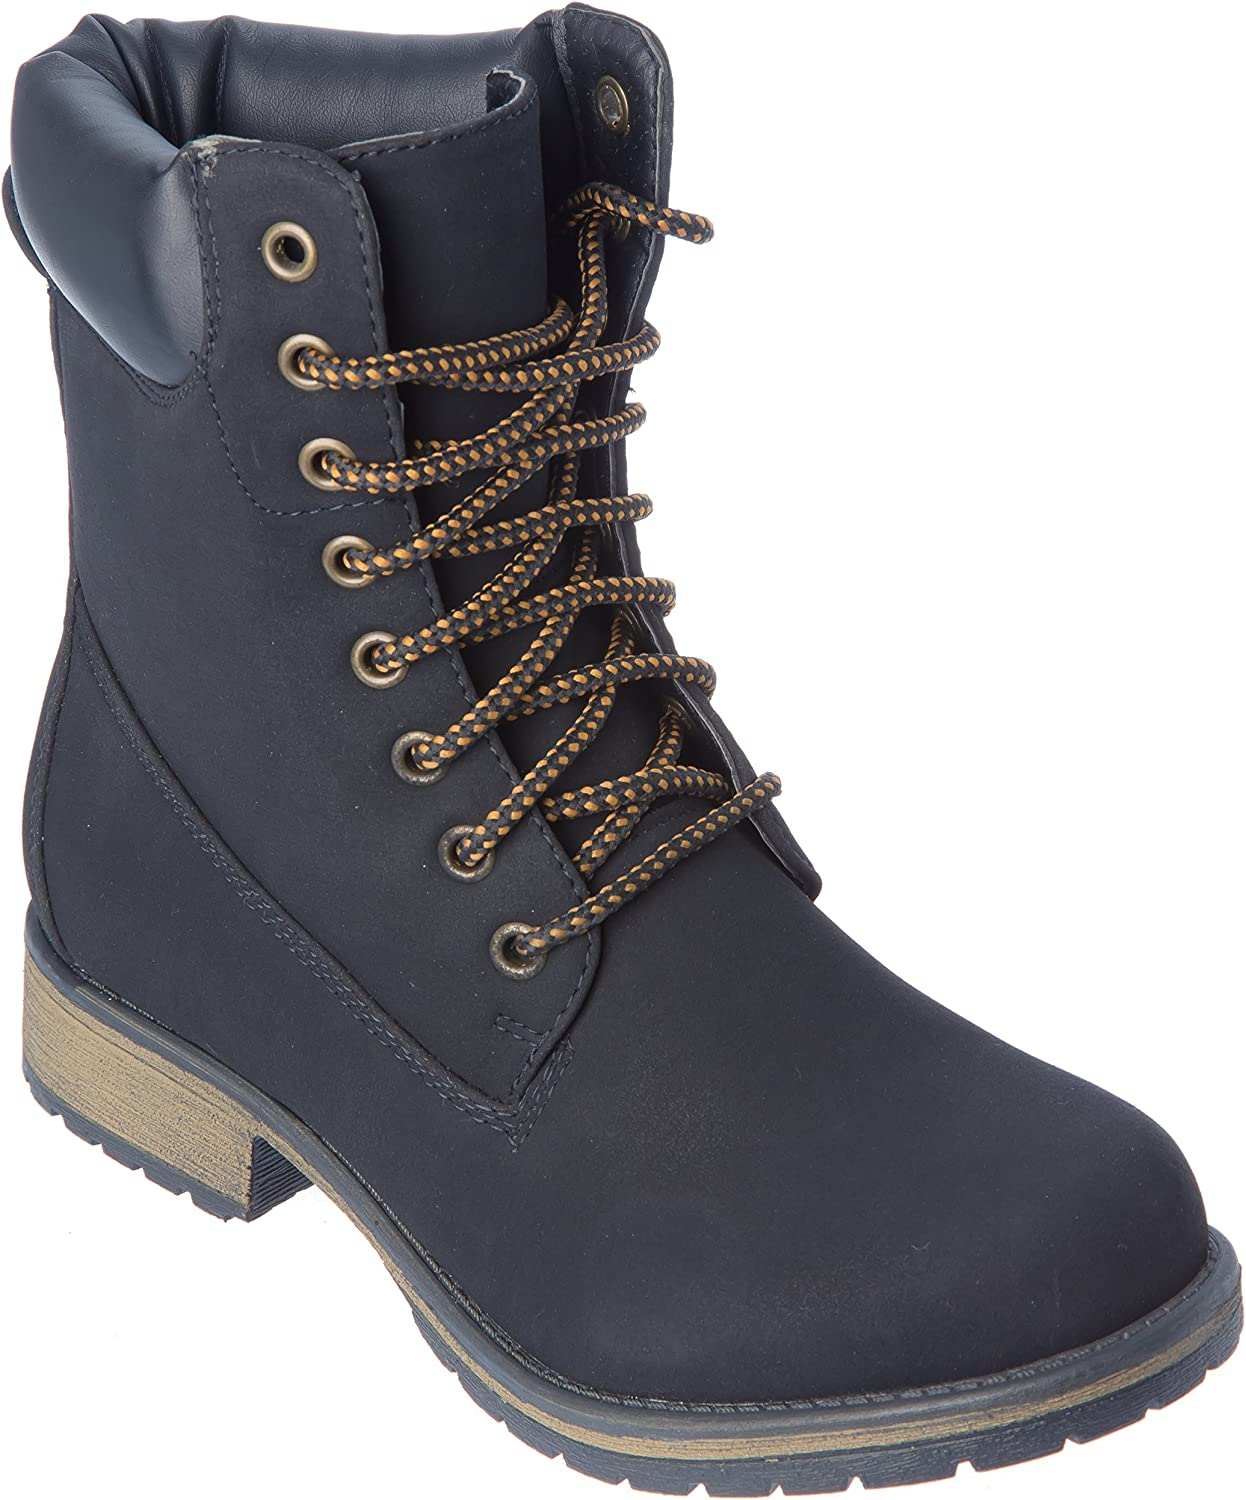 Nature Breeze Womans Western Ankle Boots Modern, Casual Fashion shoes